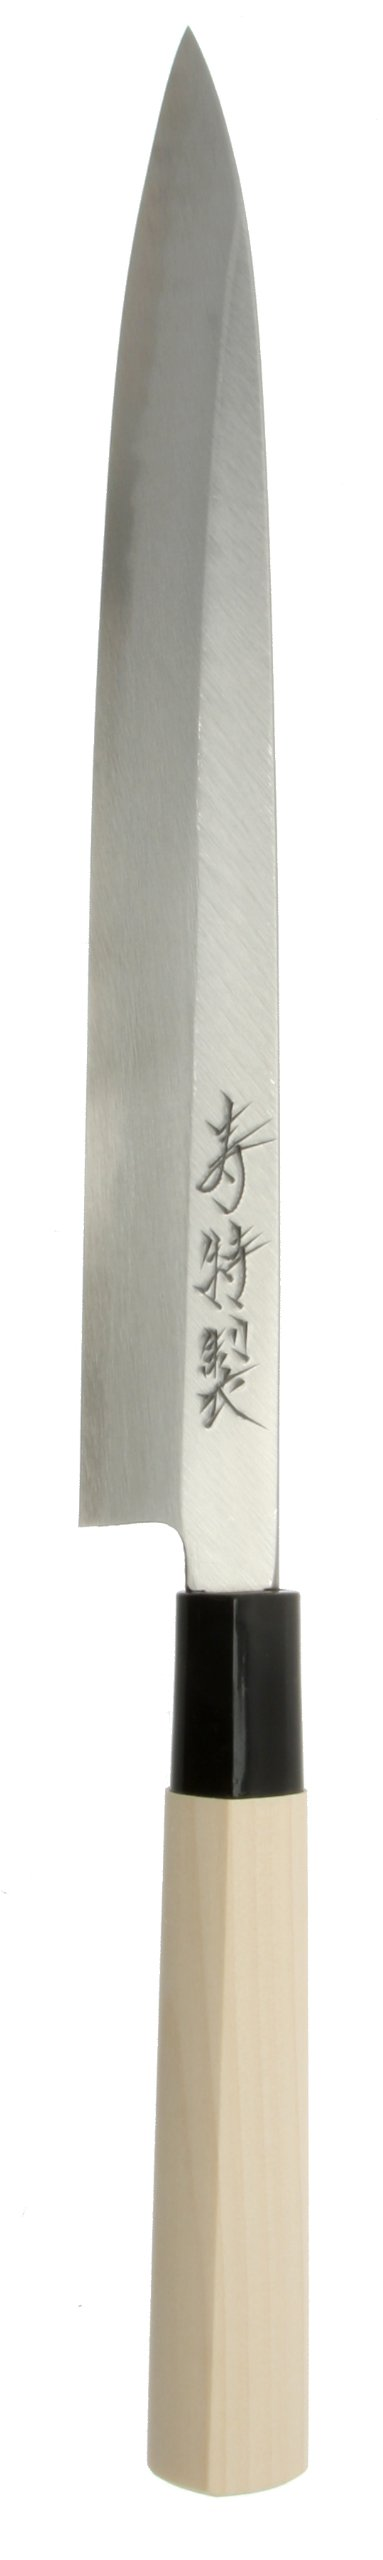 Kotobuki High-Carbon SK-5 Left-Handed Japanese Yanagi Sashimi Knife, 240mm by Kotobuki